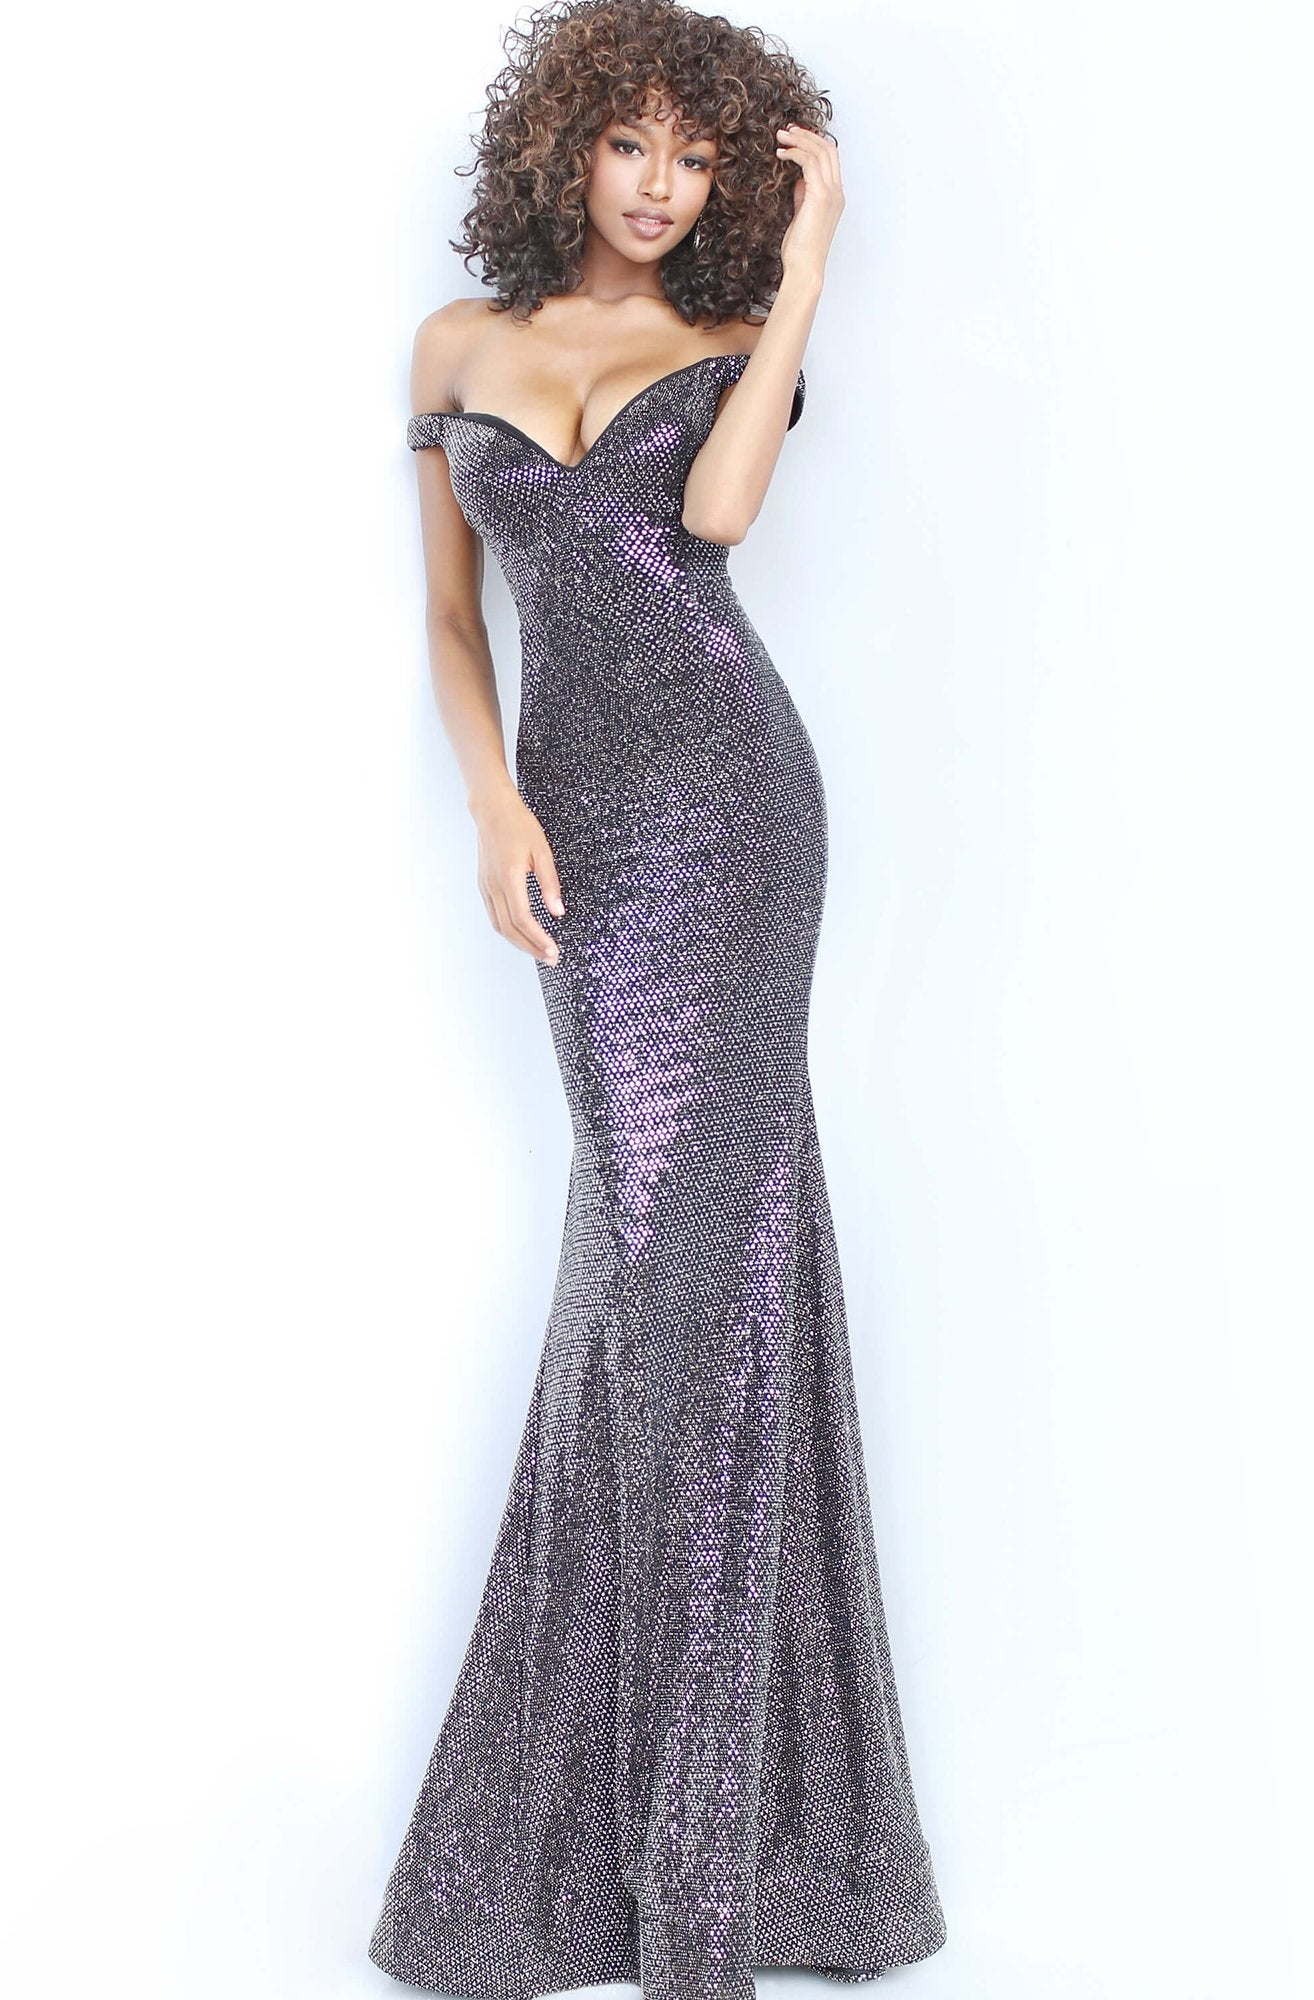 Jovani - 3408 Plunging Off-Shoulder Trumpet Dress In Black and Silver